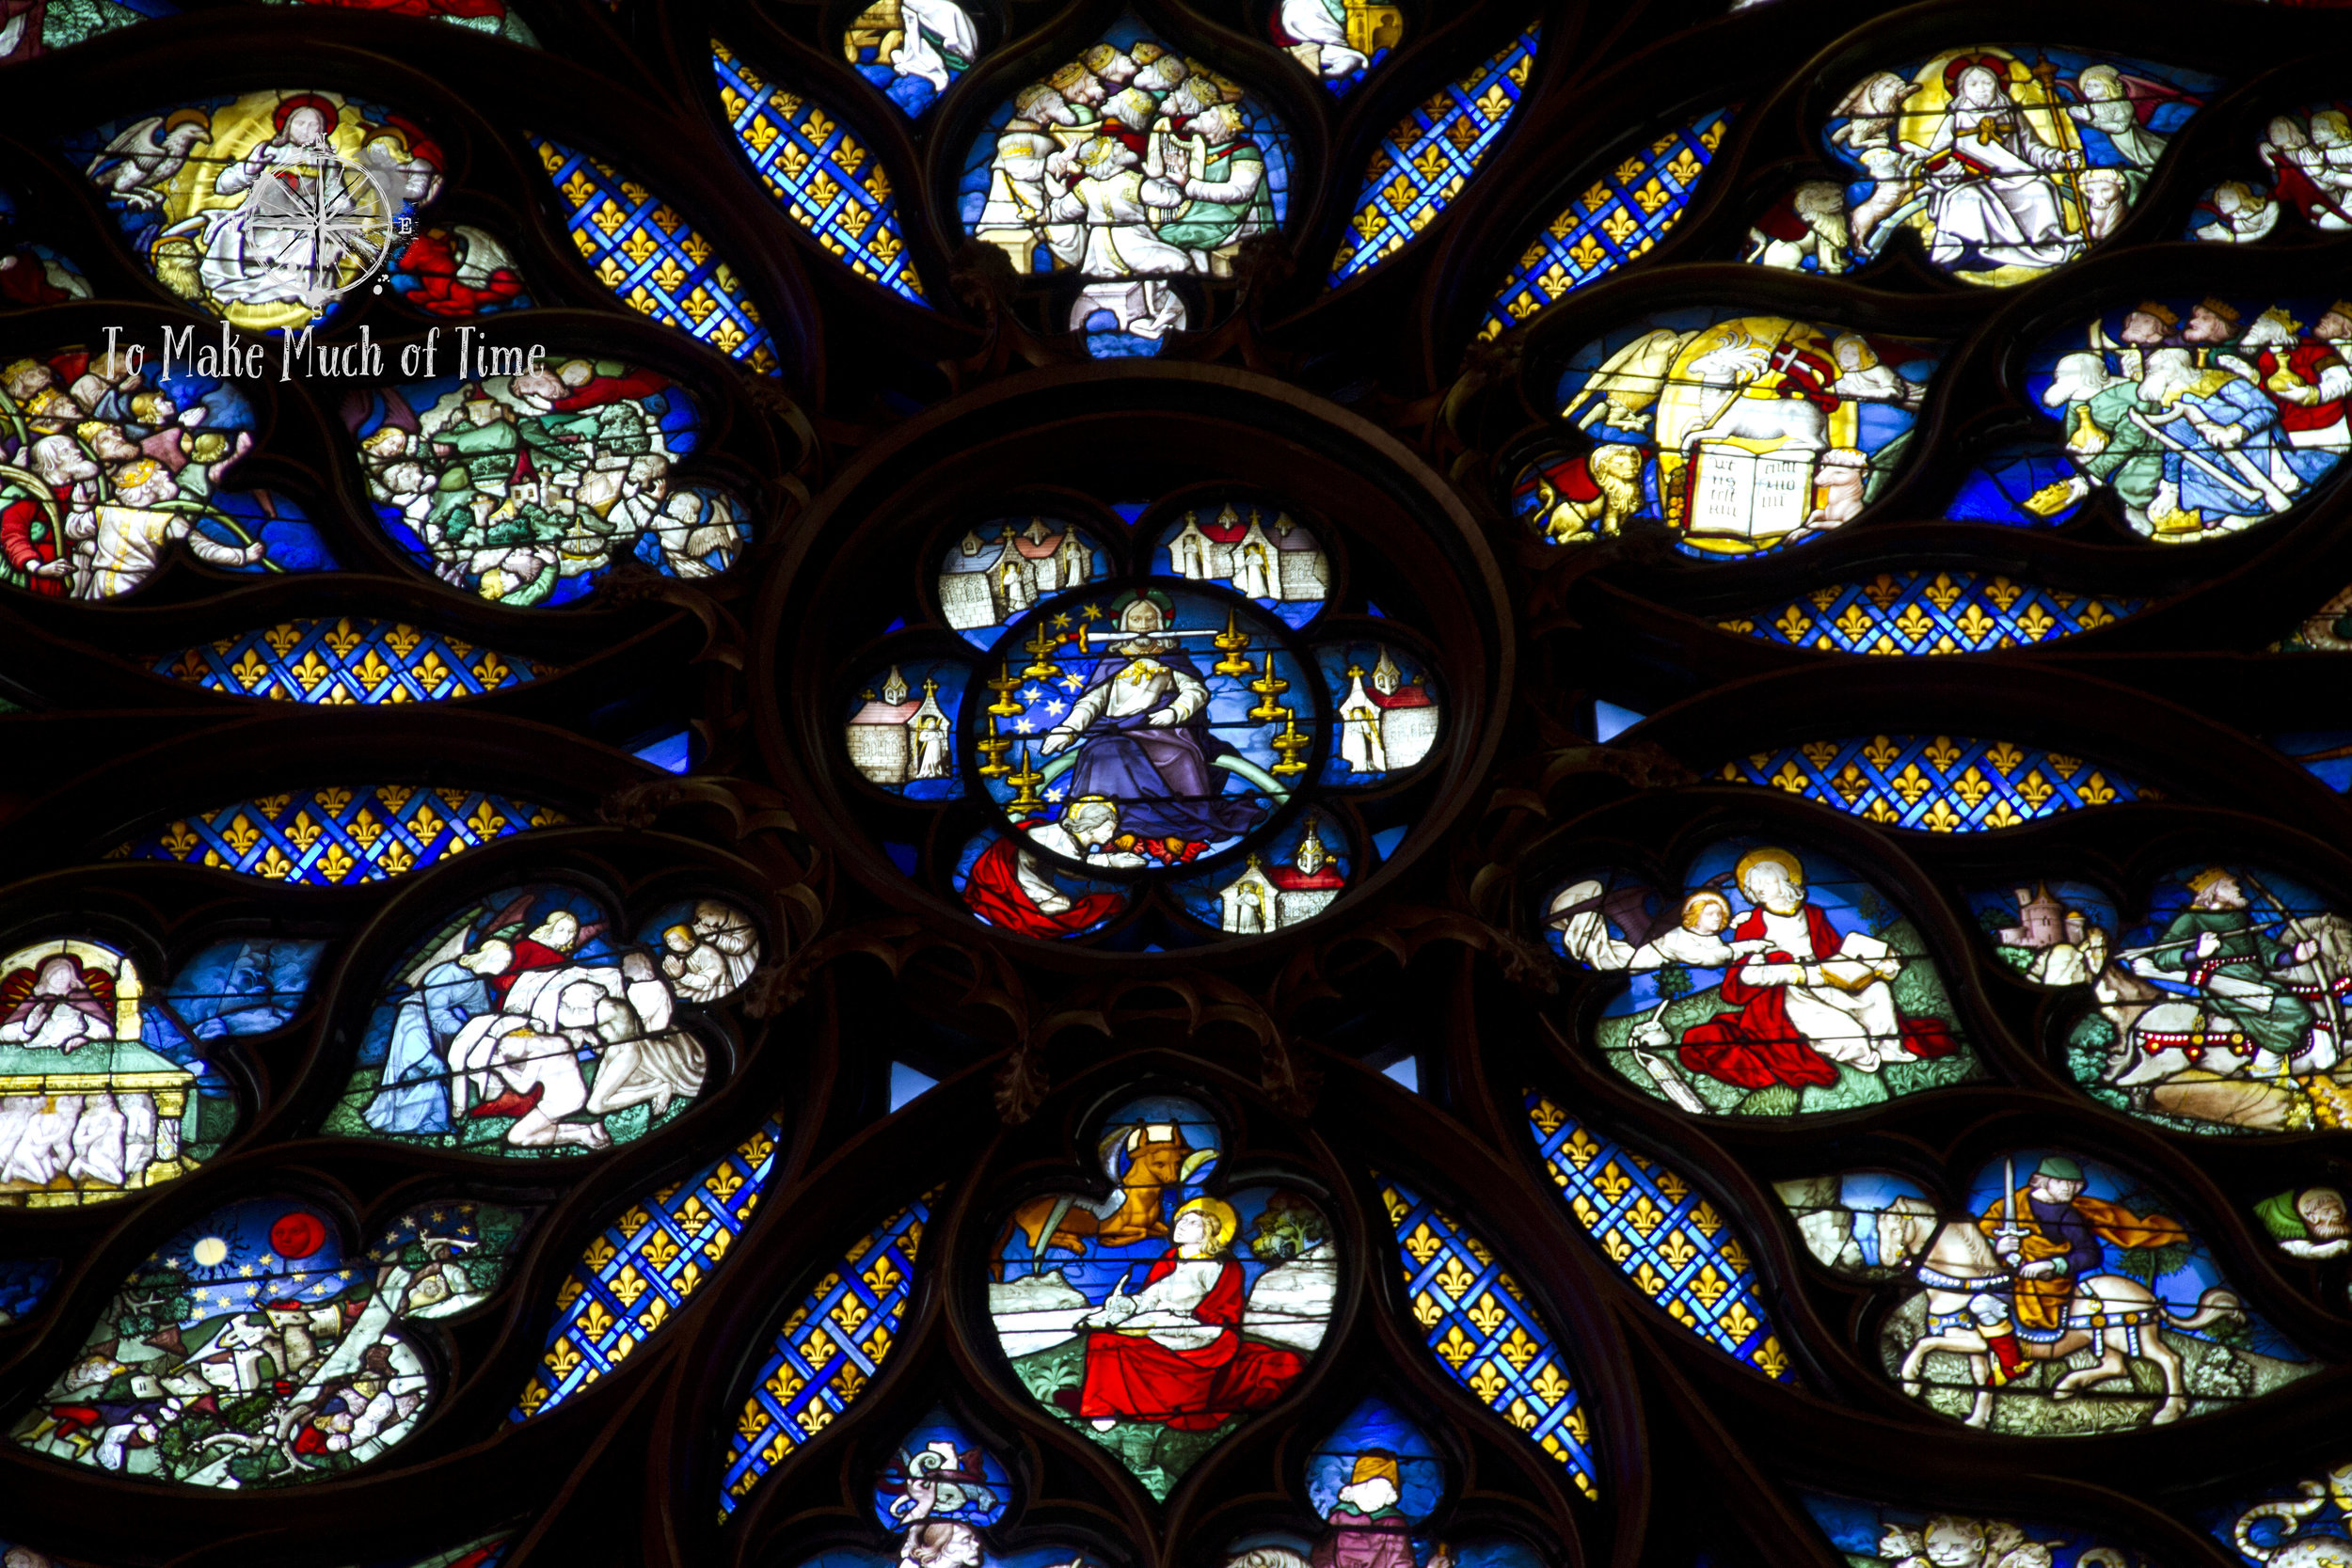 You can see the amazing detail work of the stained glass rose window at Sainte-Chapelle.